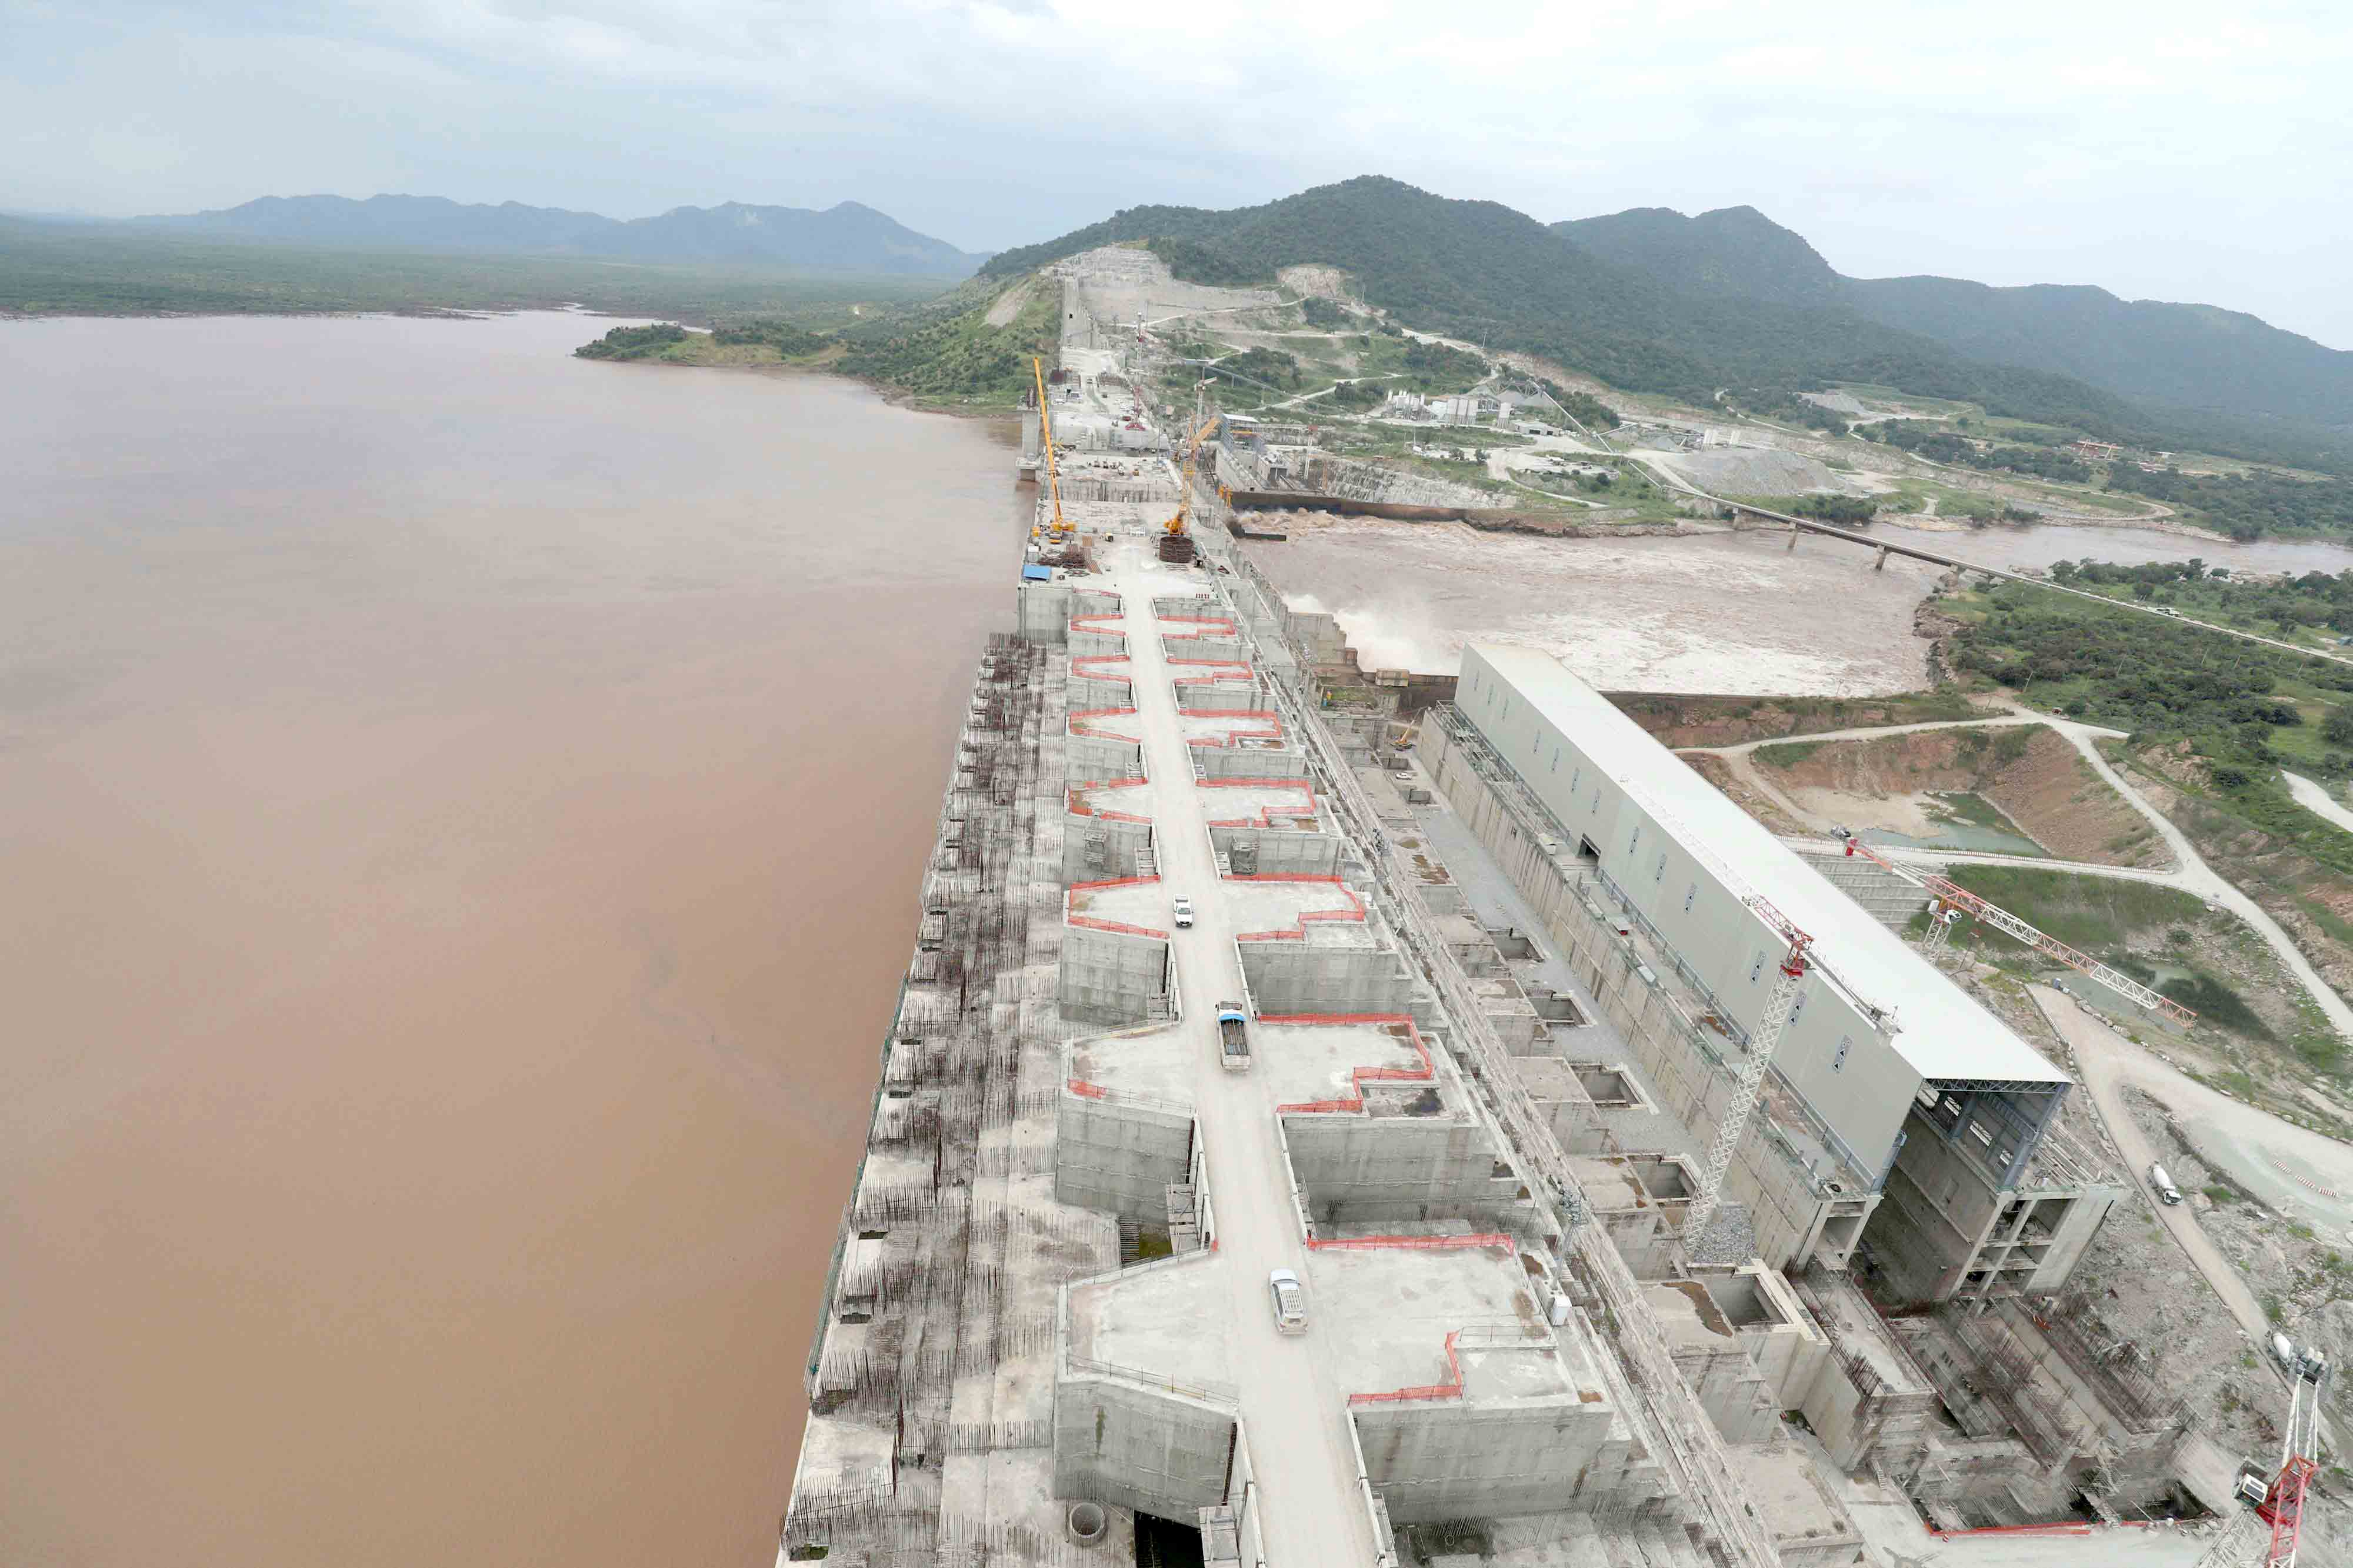 The construction site of the Grand Ethiopian Renaissance Dam in Guba Woreda, Benishangul-Gumuz Region, Ethiopia. (Reuters)